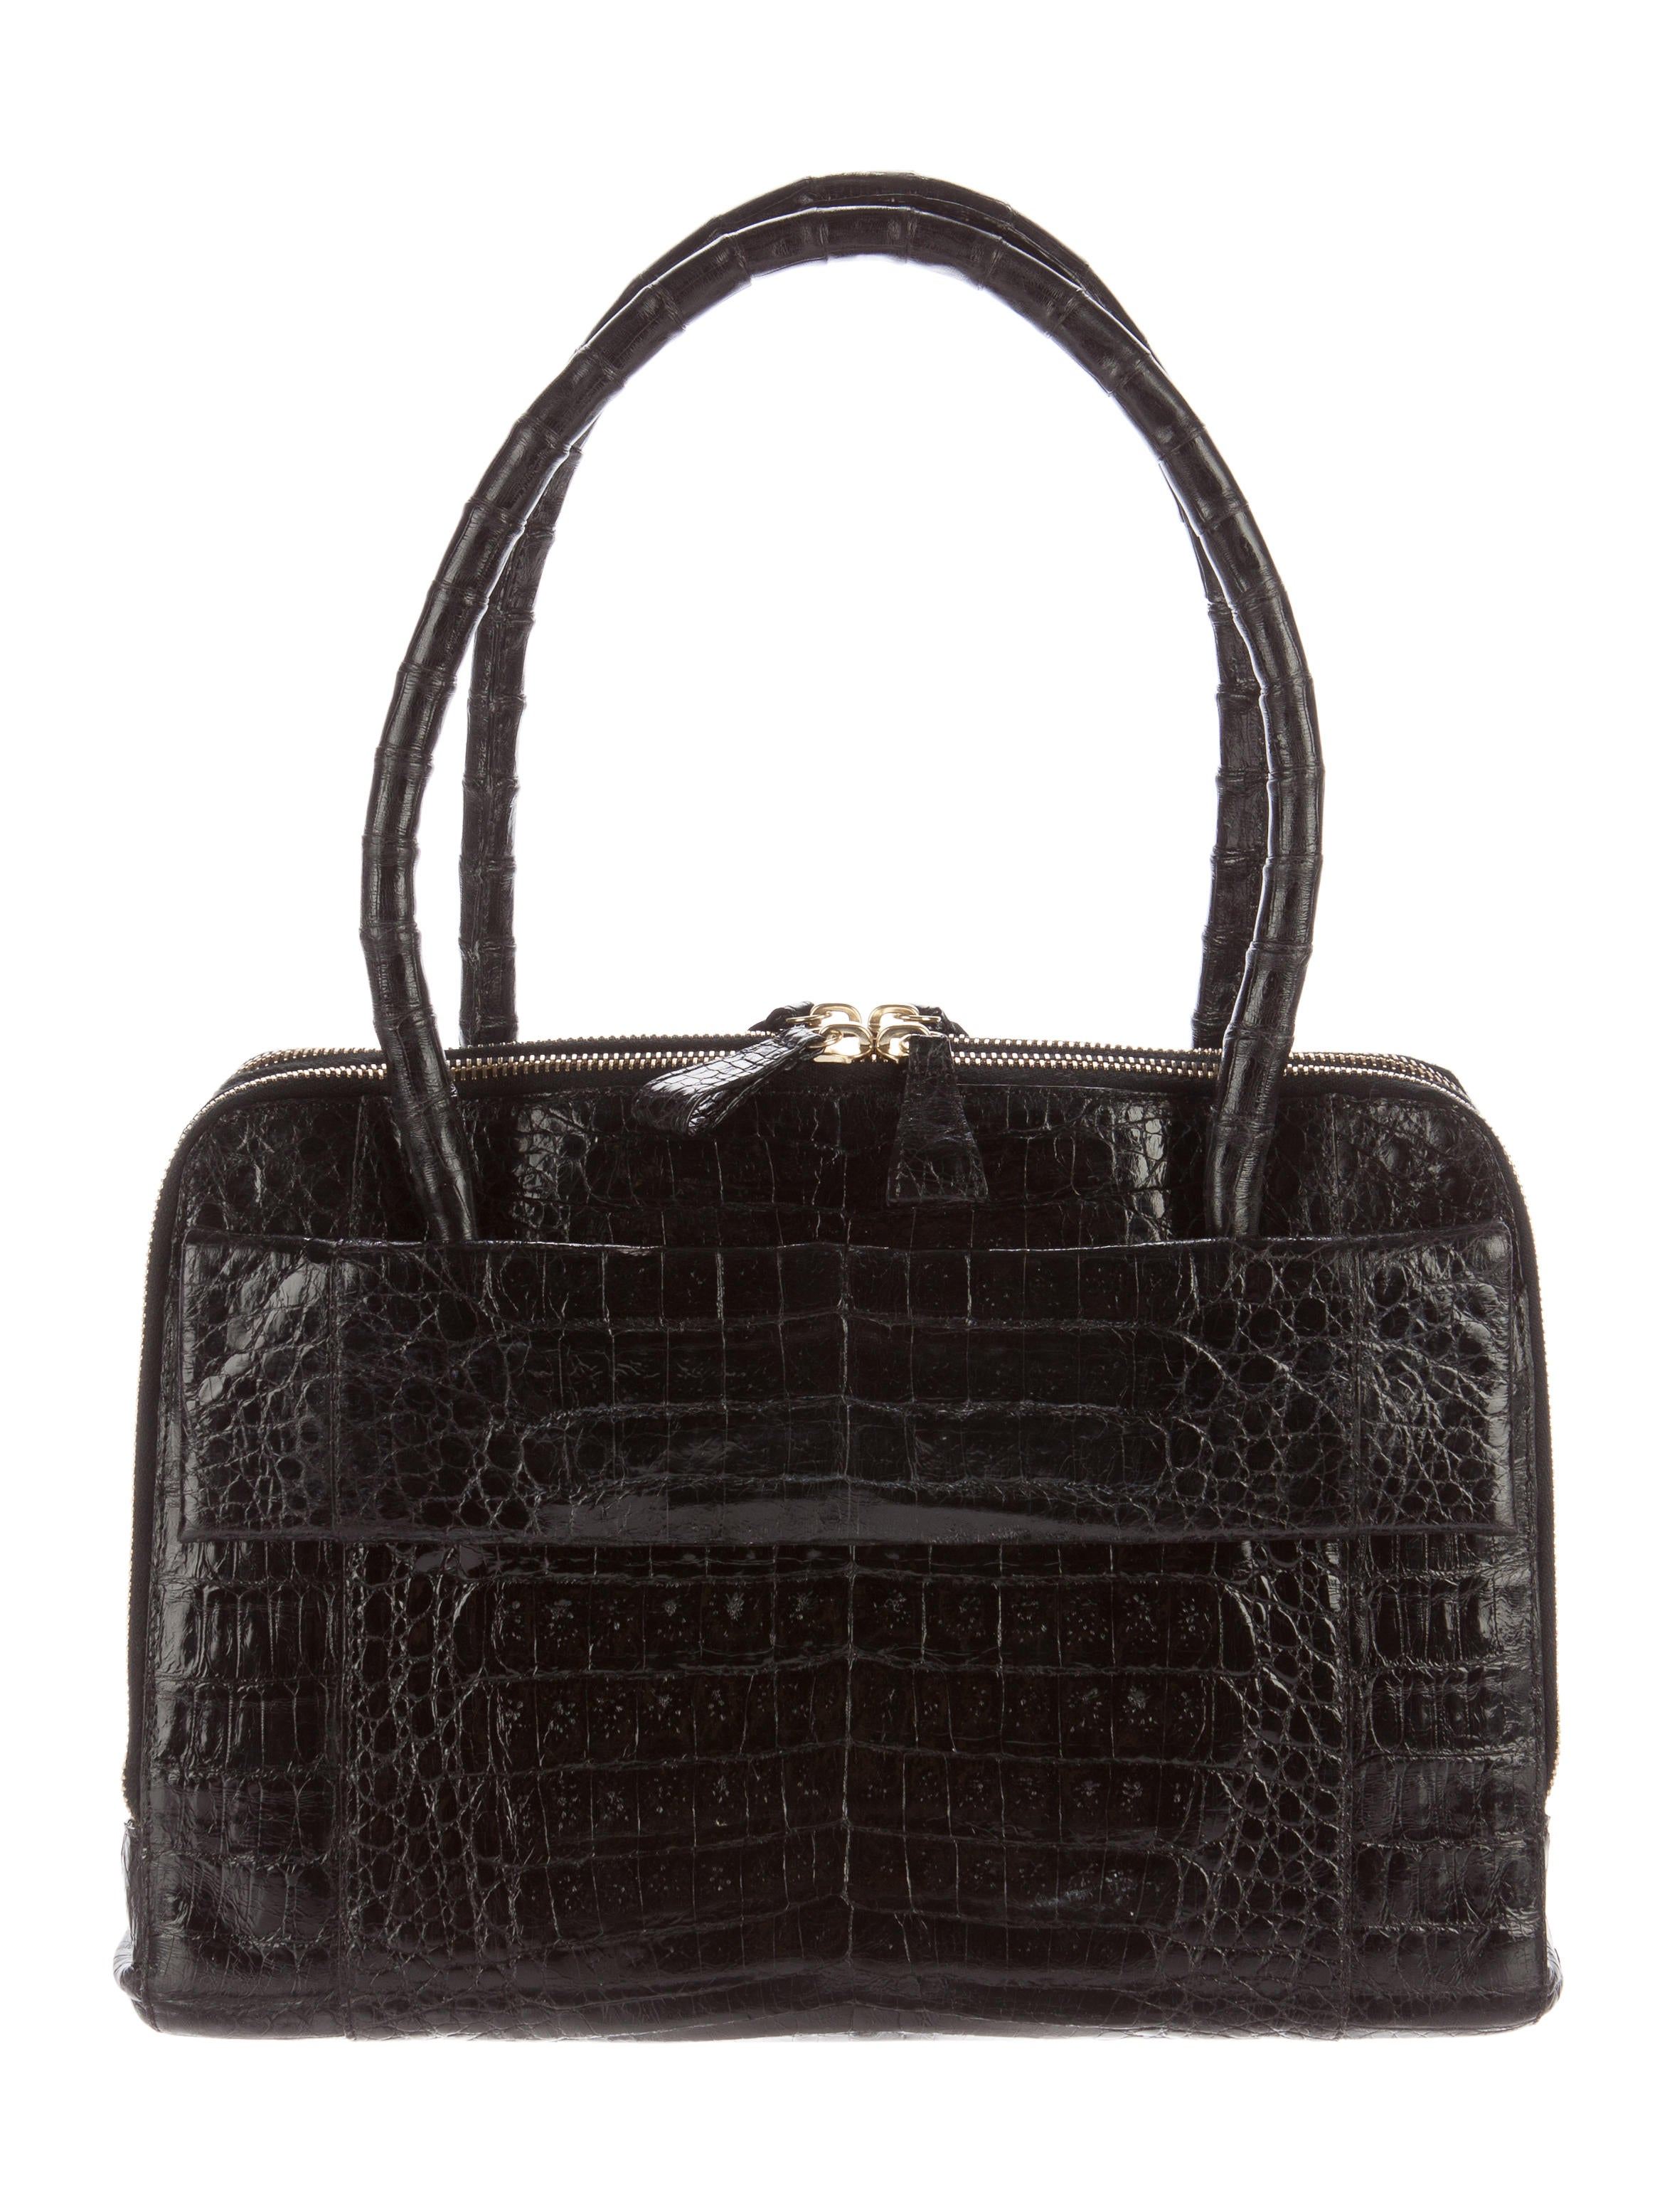 Nancy gonzalez crocodile zip tote handbags nan23353 for Nancy gonzalez crocodile tote